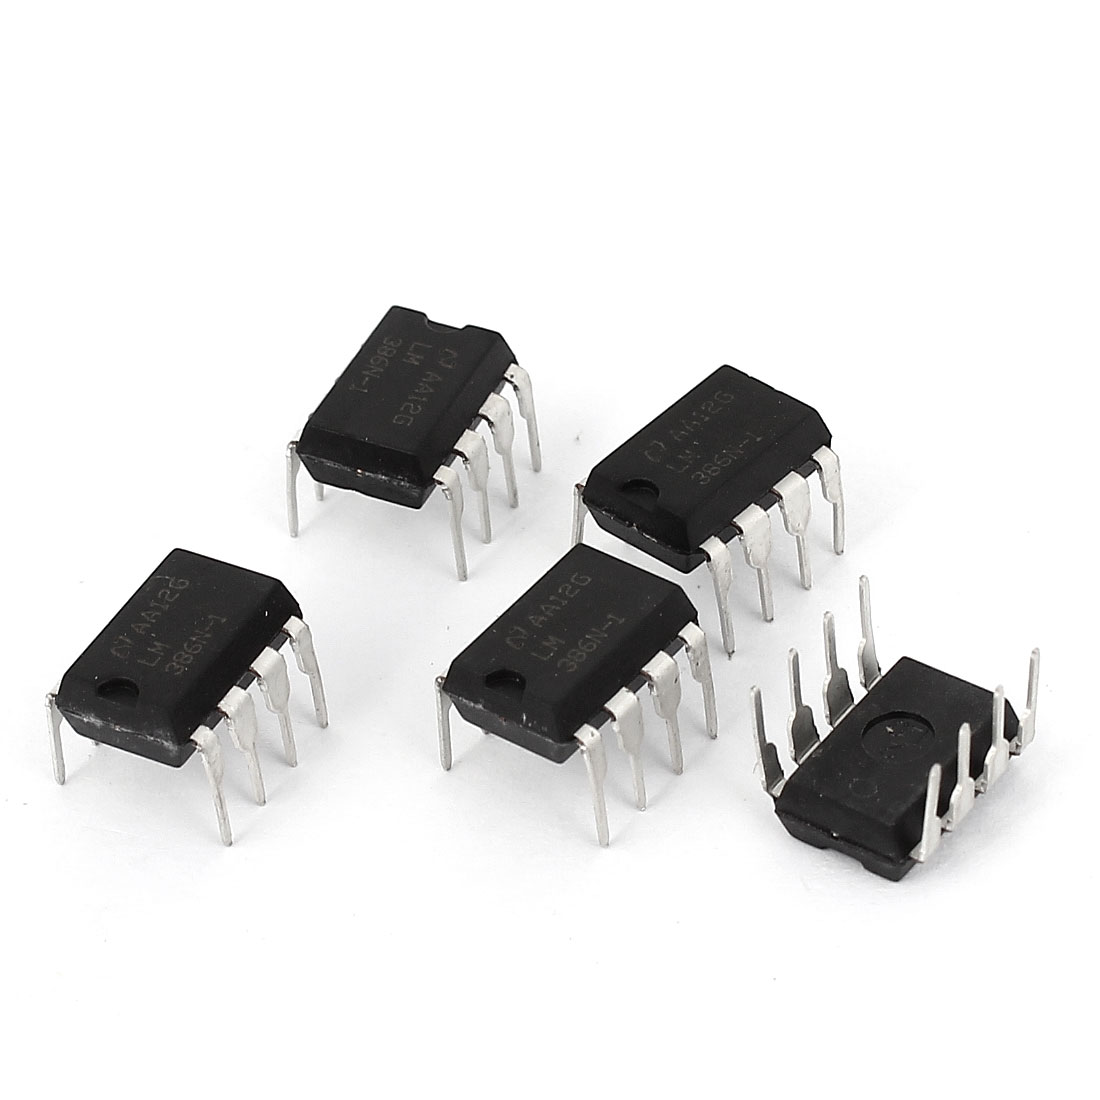 5 Pcs 8 Pins MSOP Package DIP IC LM386N-1 for AM-FM Radio Amplifiers